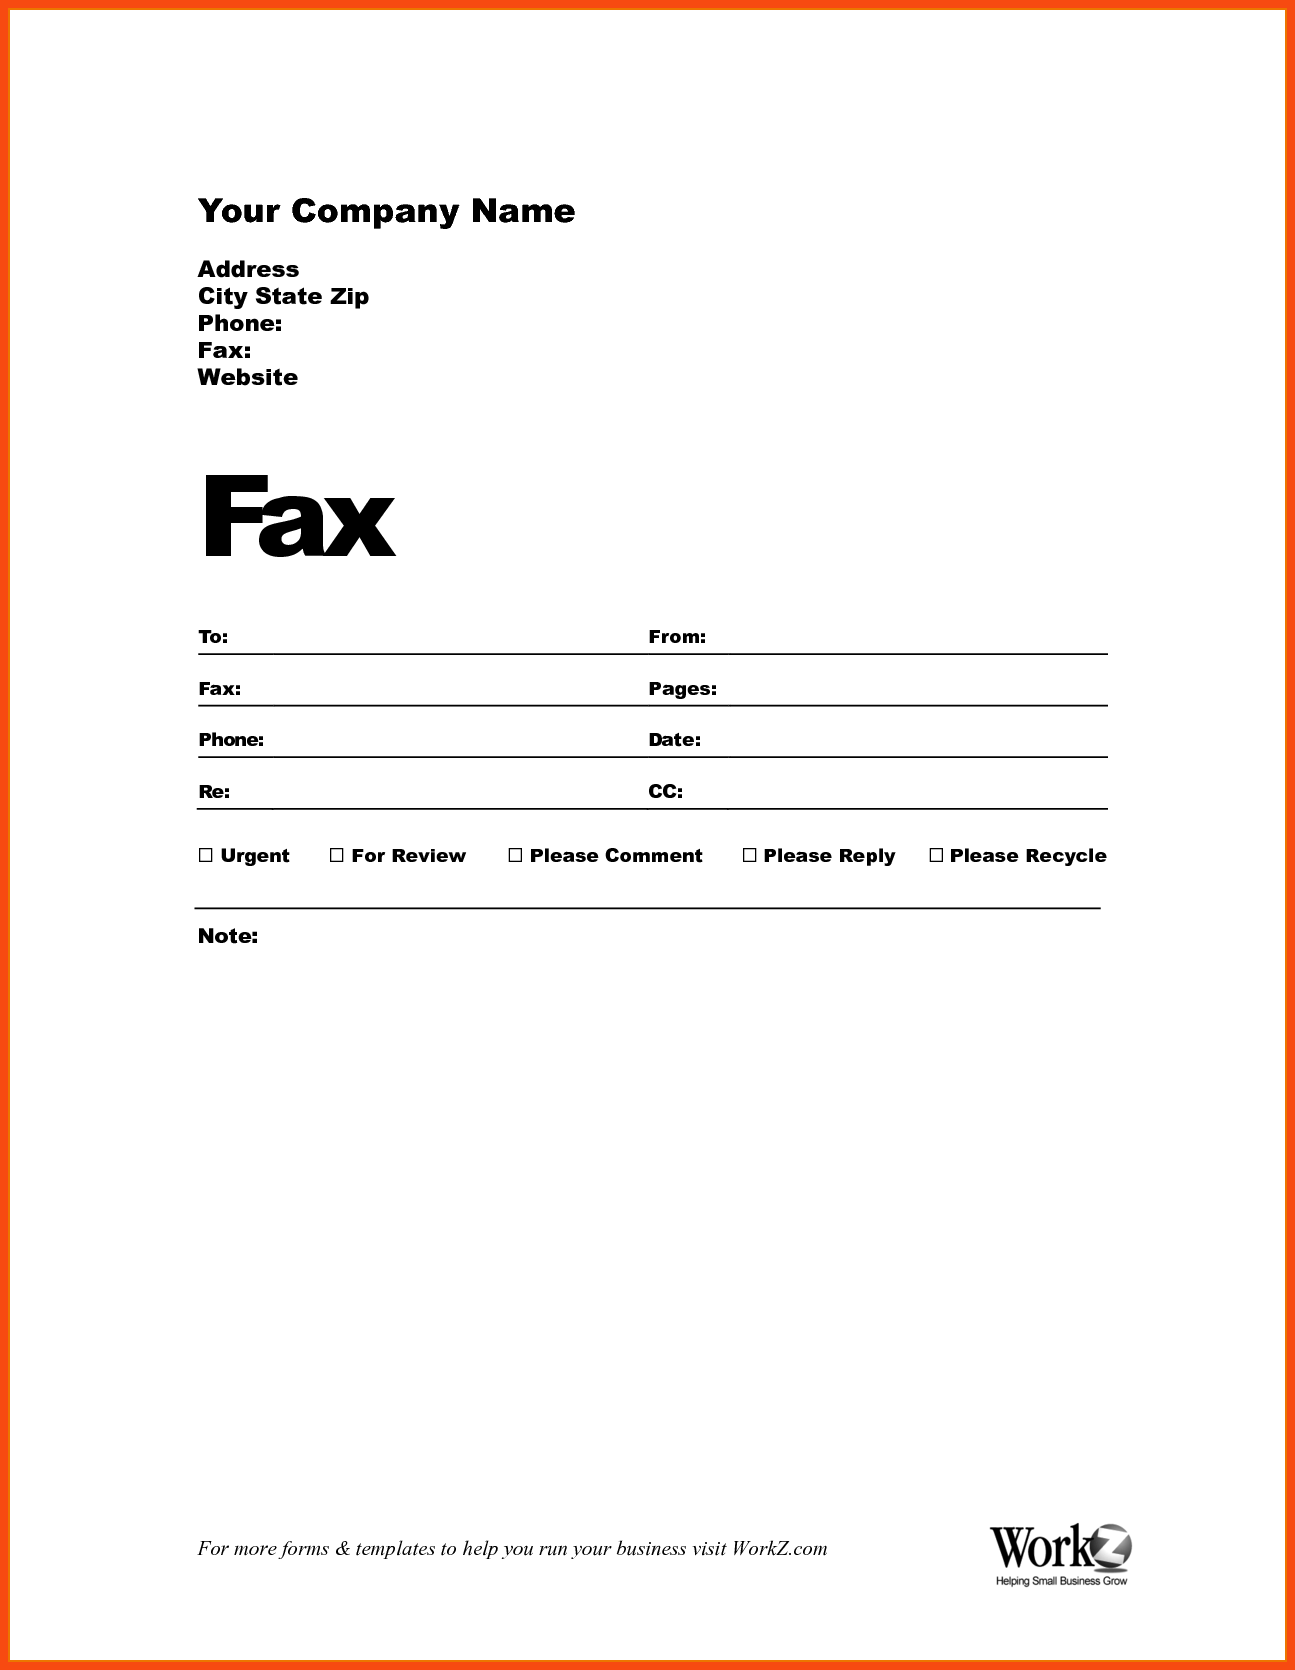 How To Fill Out A Fax Cover Sheet Free Template